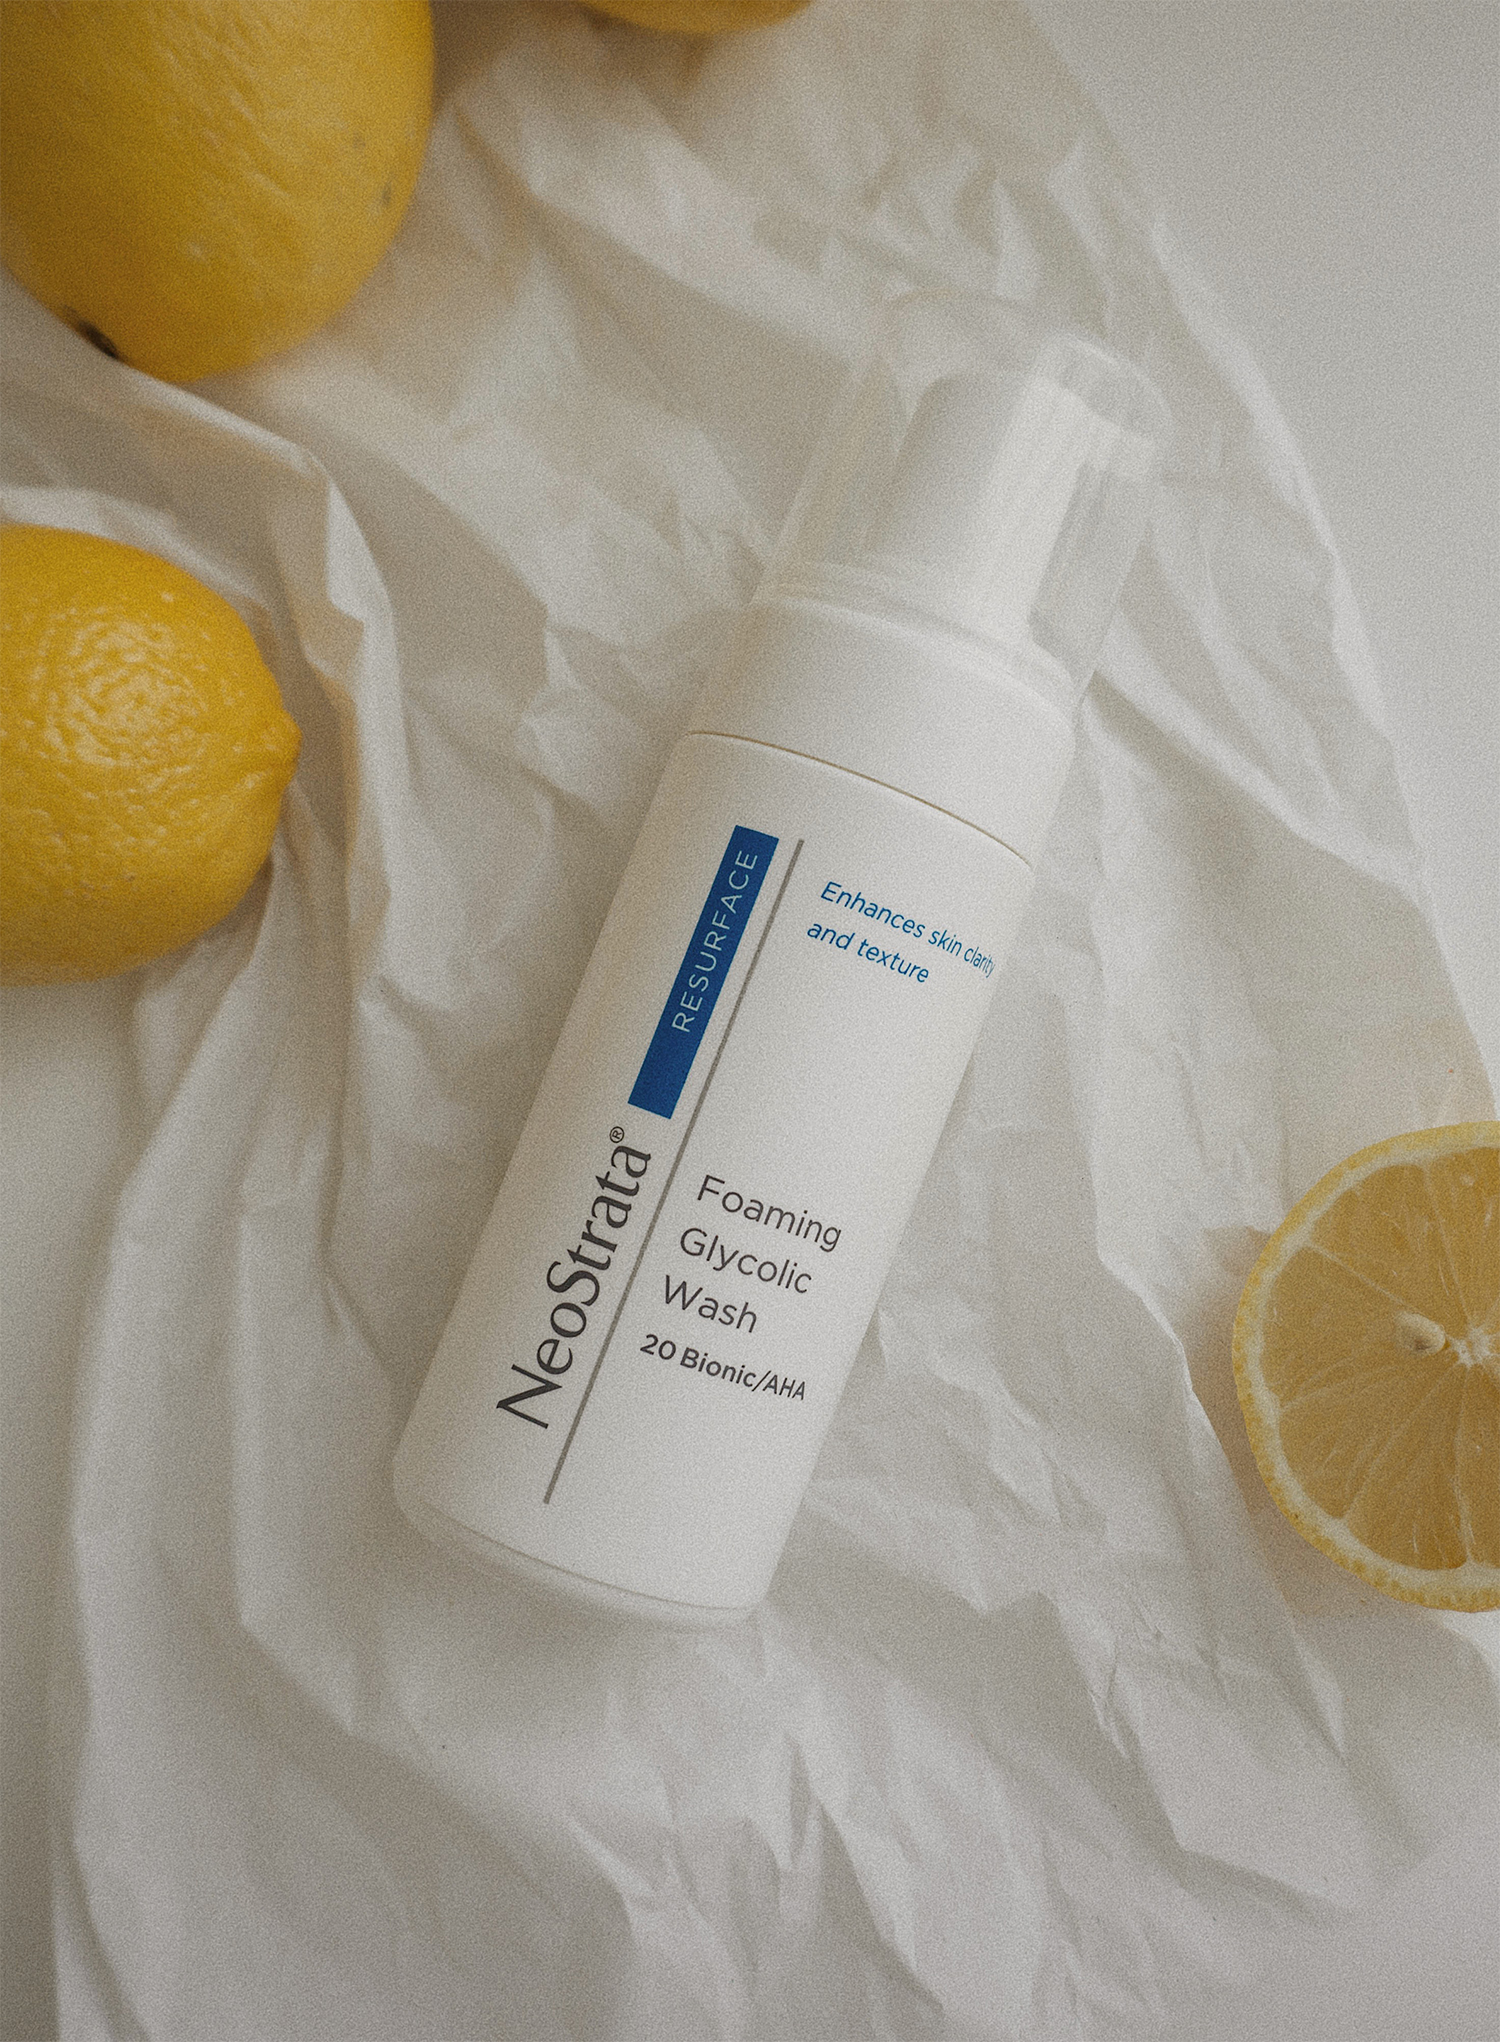 neostrata_Glycolic_wash_review_thewhiteocean_lenajuice_04